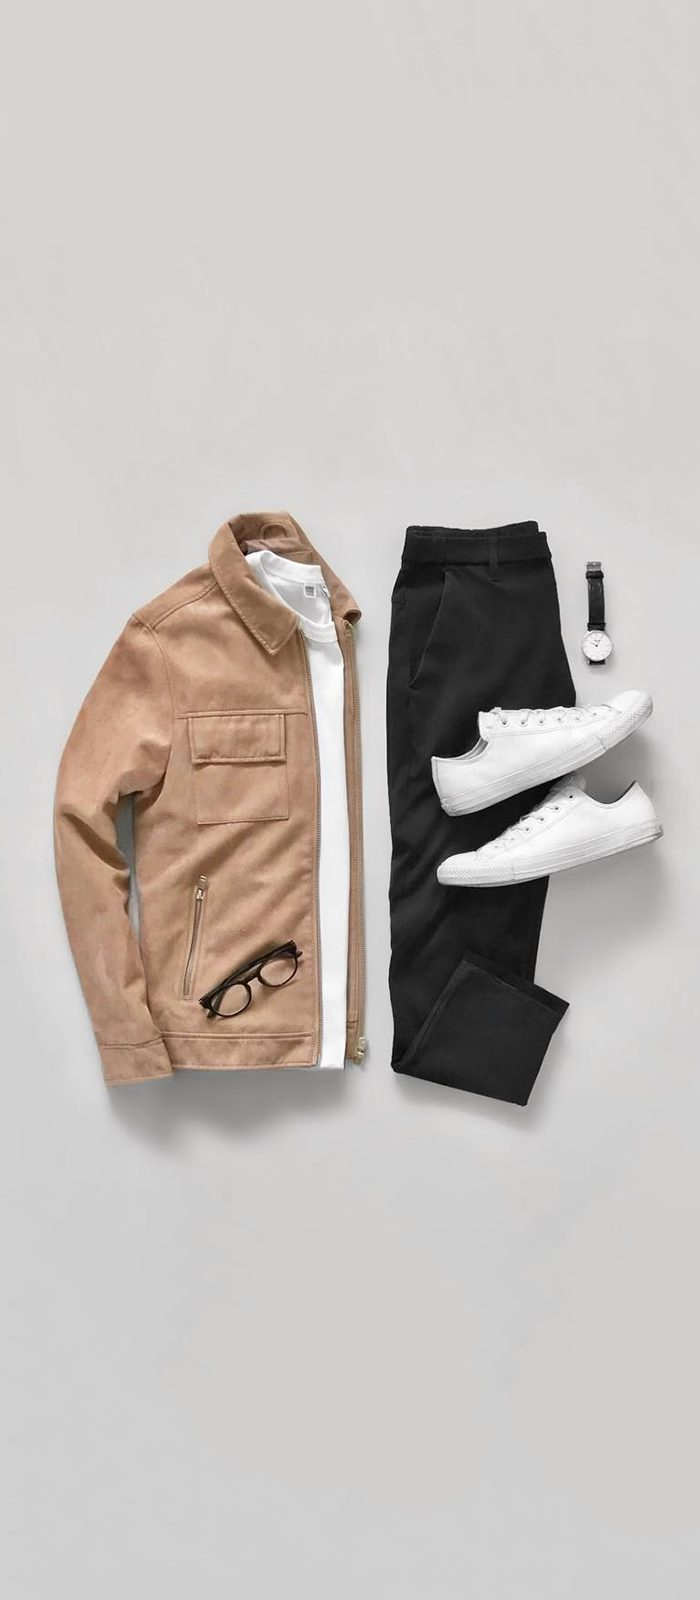 OOTD Outfit Ideas For Men To Check Out